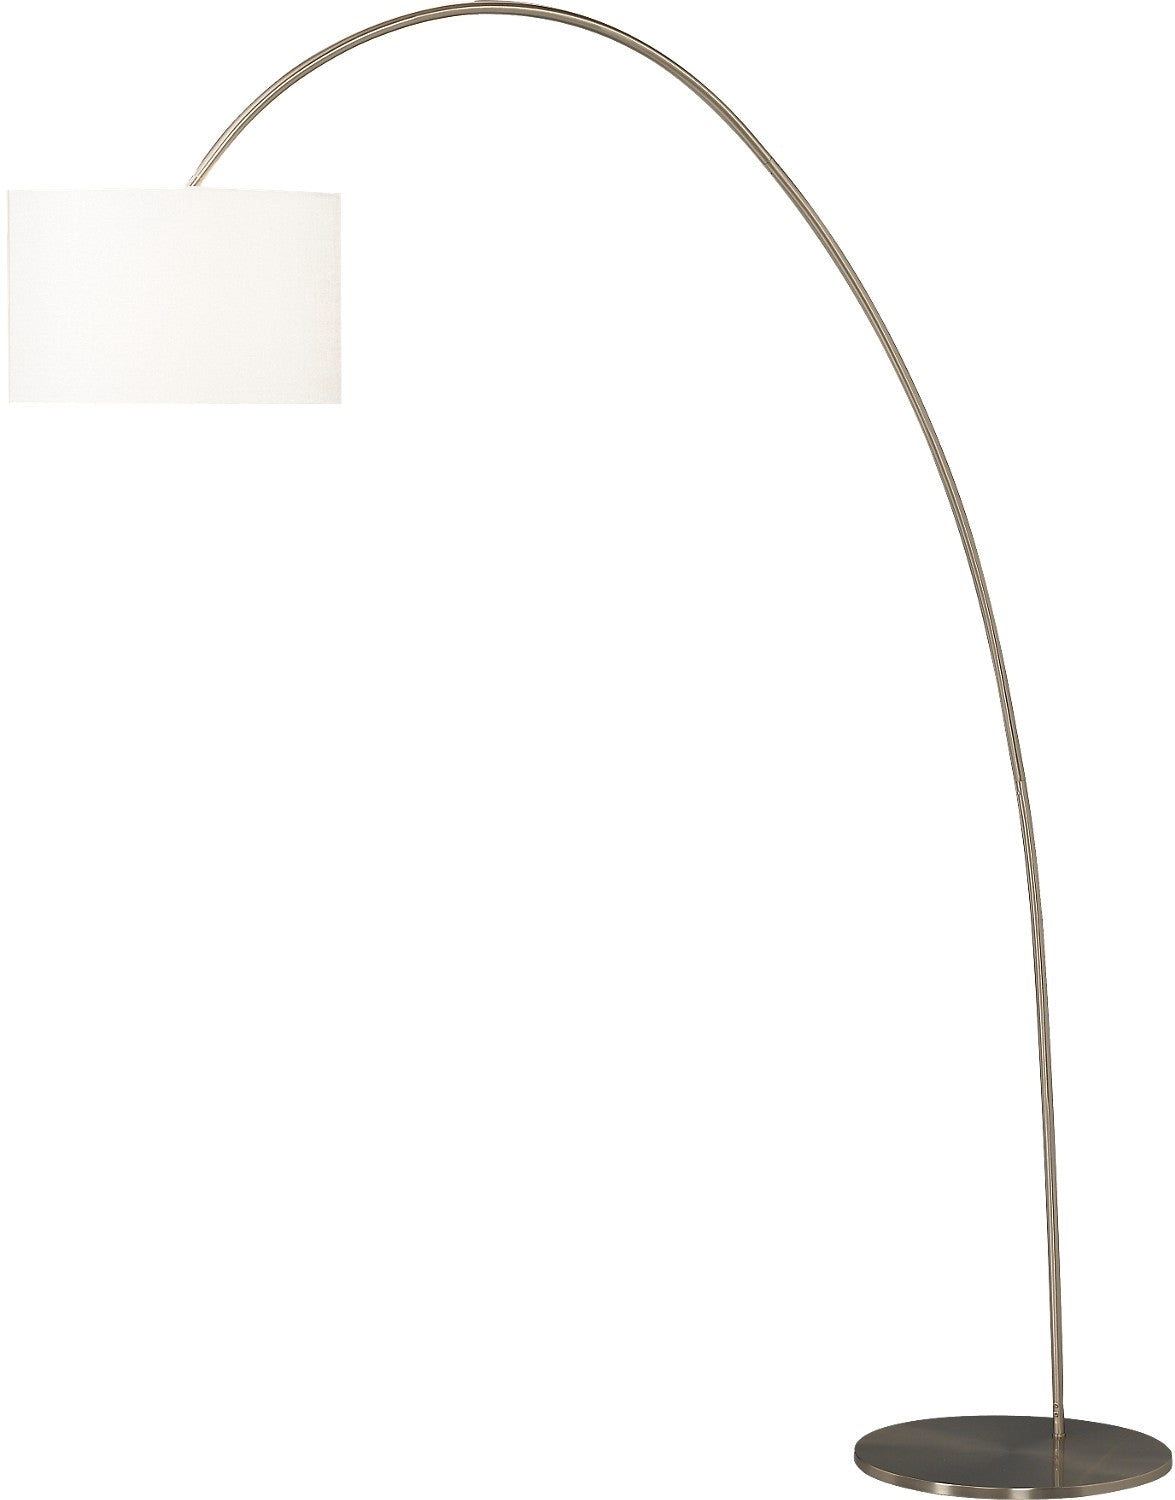 Image of: Brushed Steel Arc Floor Lamp With Linen Shade The Brick